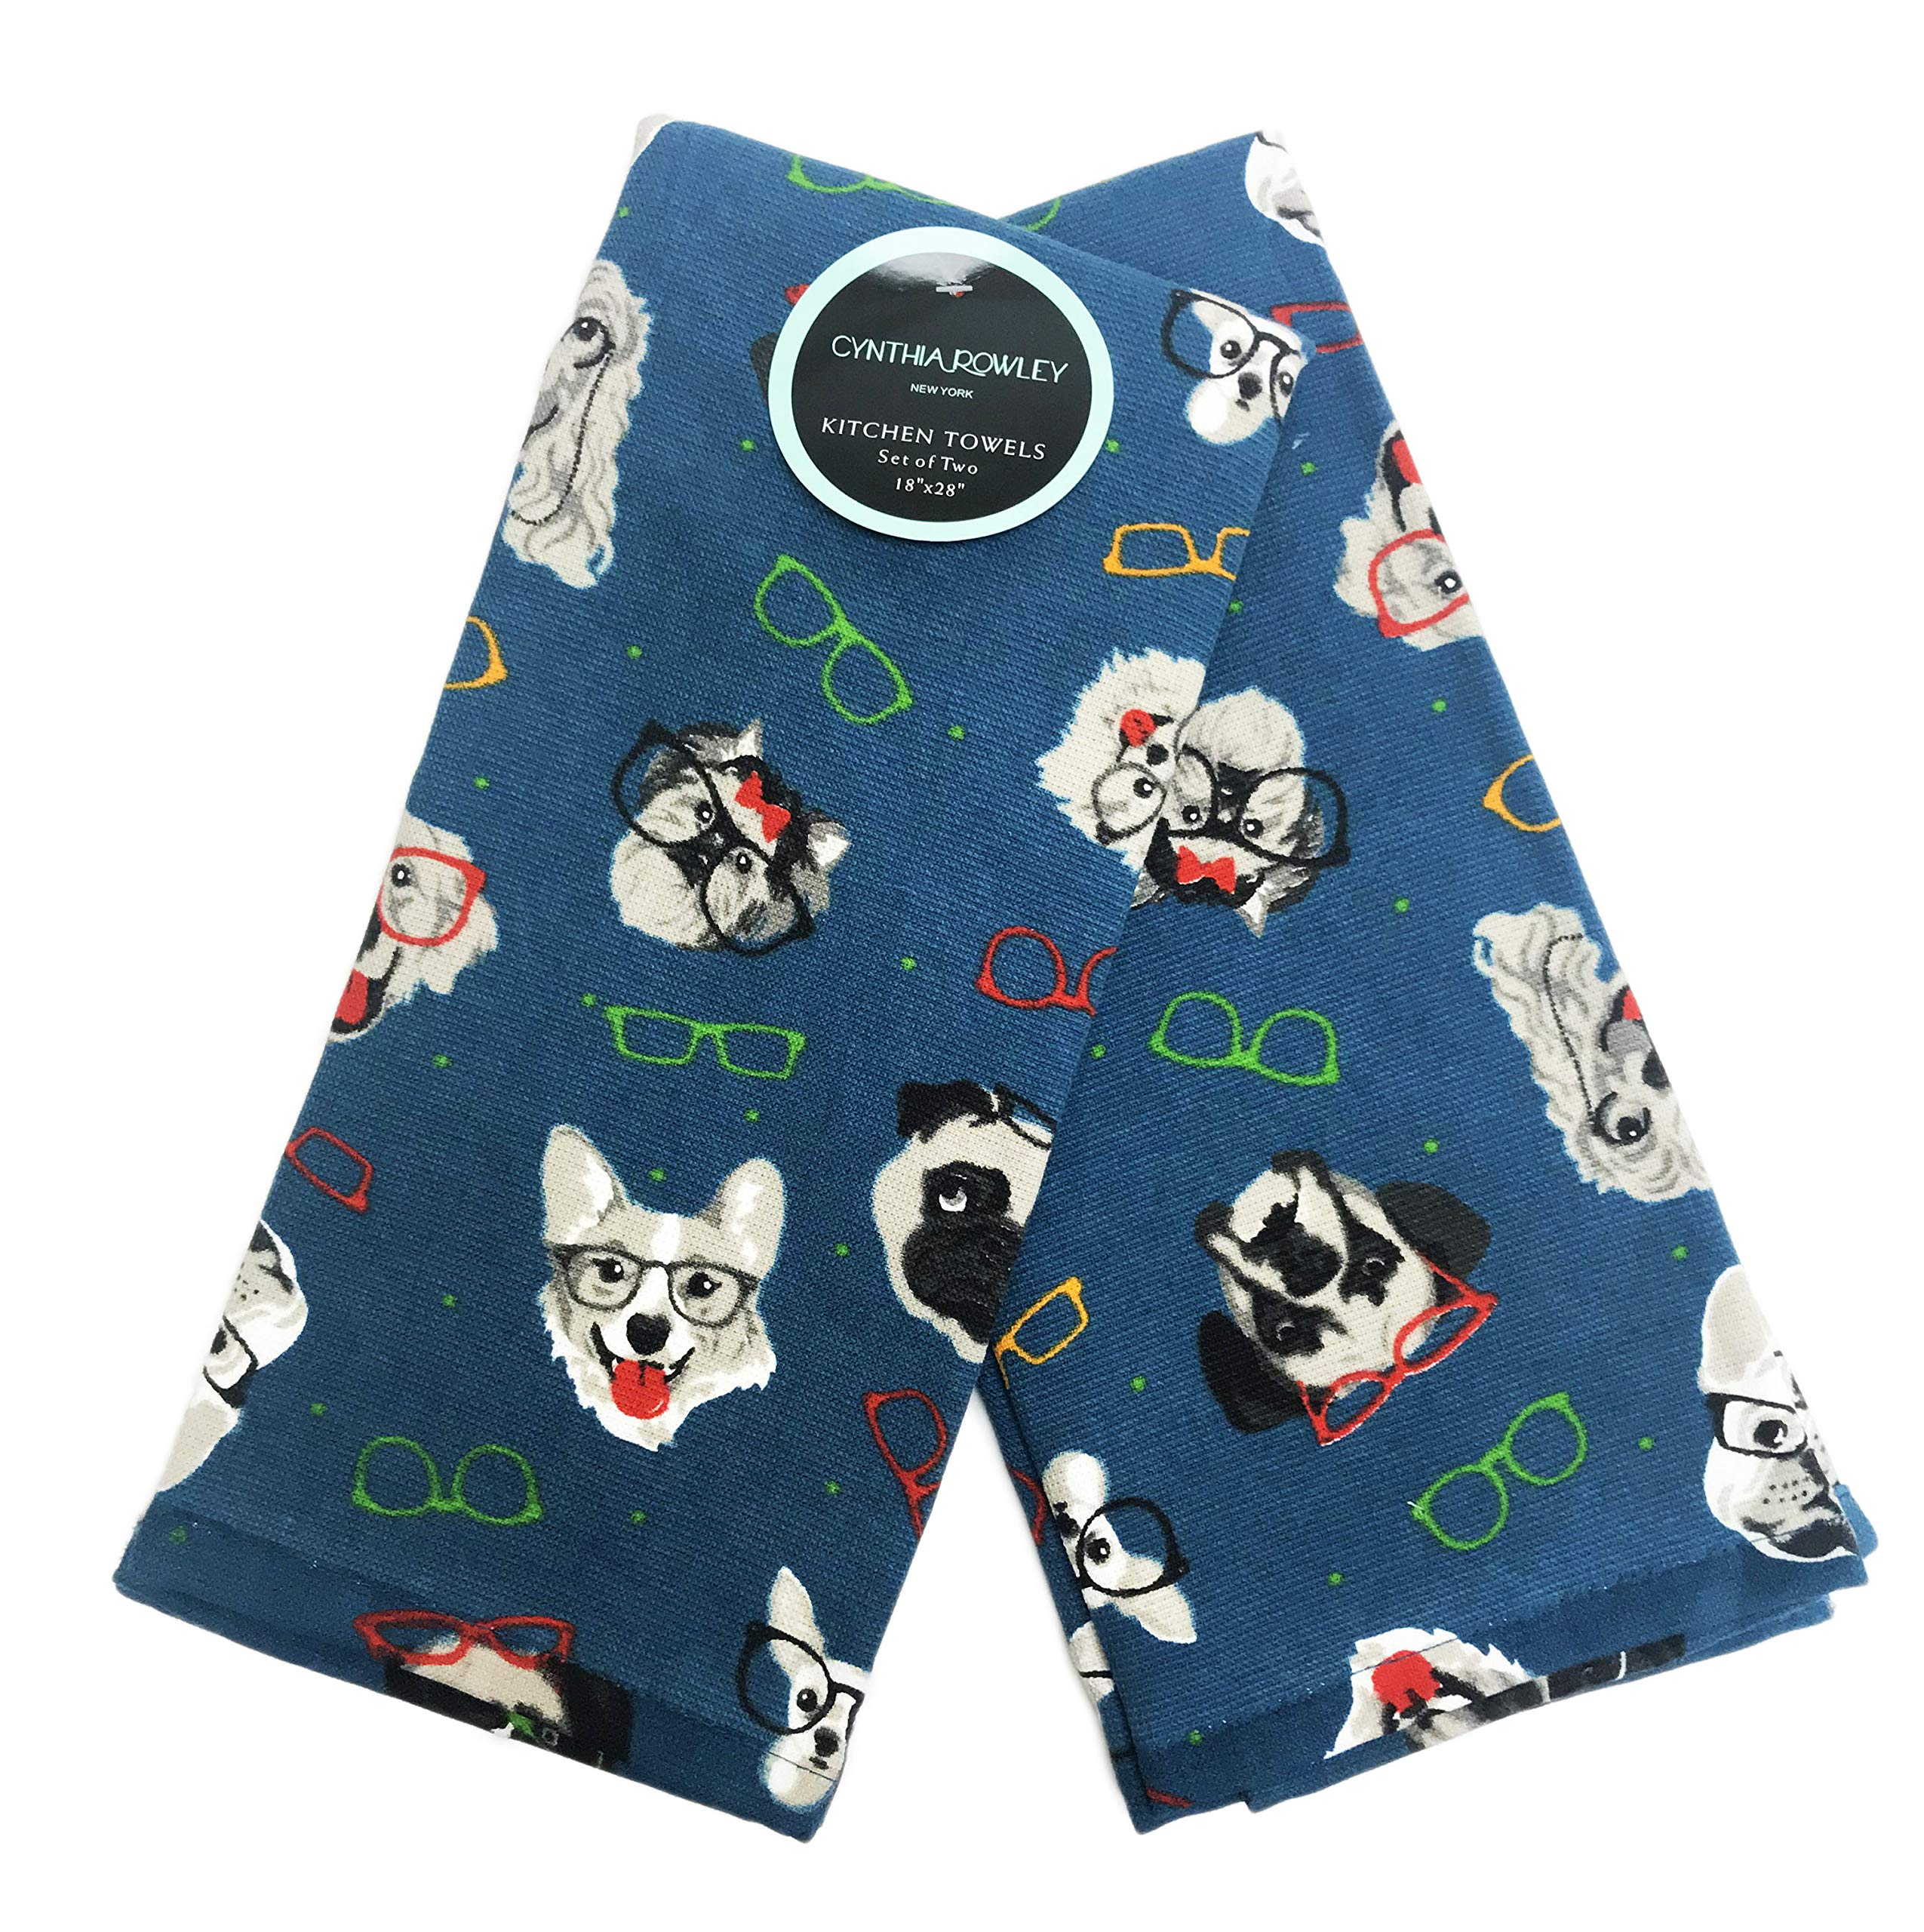 Cynthia Rowley Multi Dog Breeds Wearing Eyeglasses Set of Two Decorative Kitchen Hand Towels 18'' x 28''